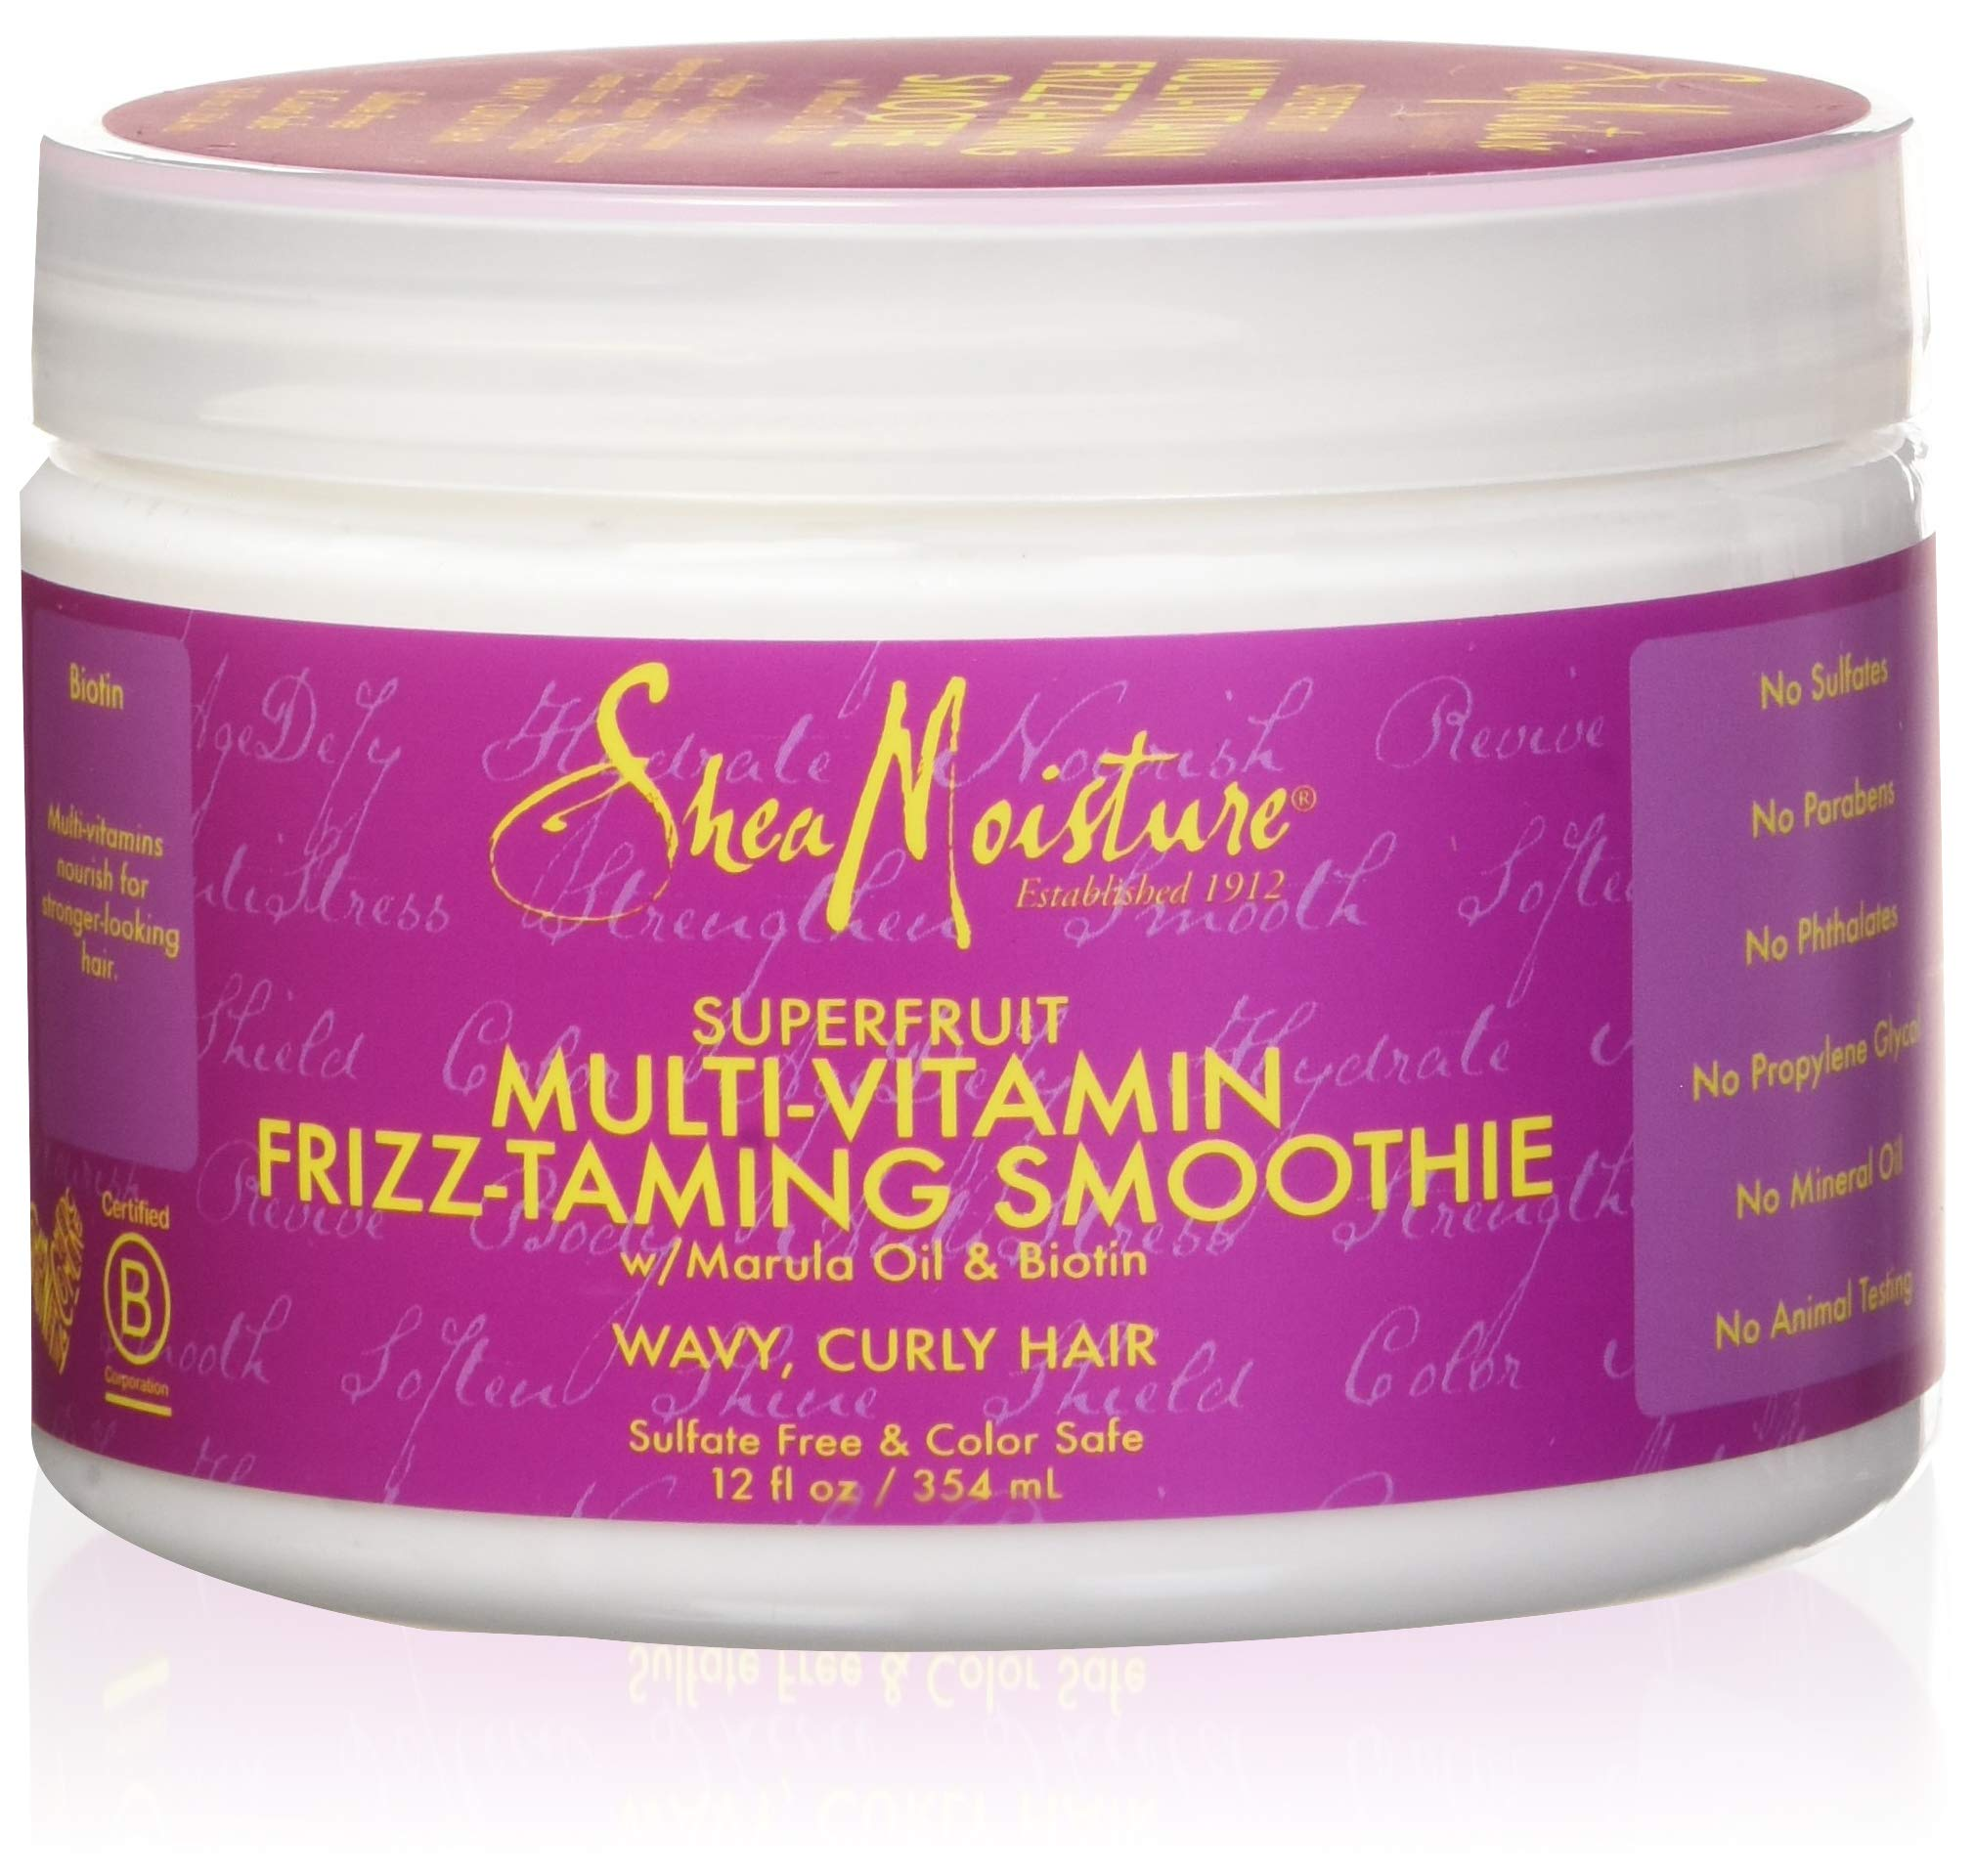 Shea Moisture Frizz-taming Smoothie Superfruit Multi-Vitamin, 12 Fluid Ounce